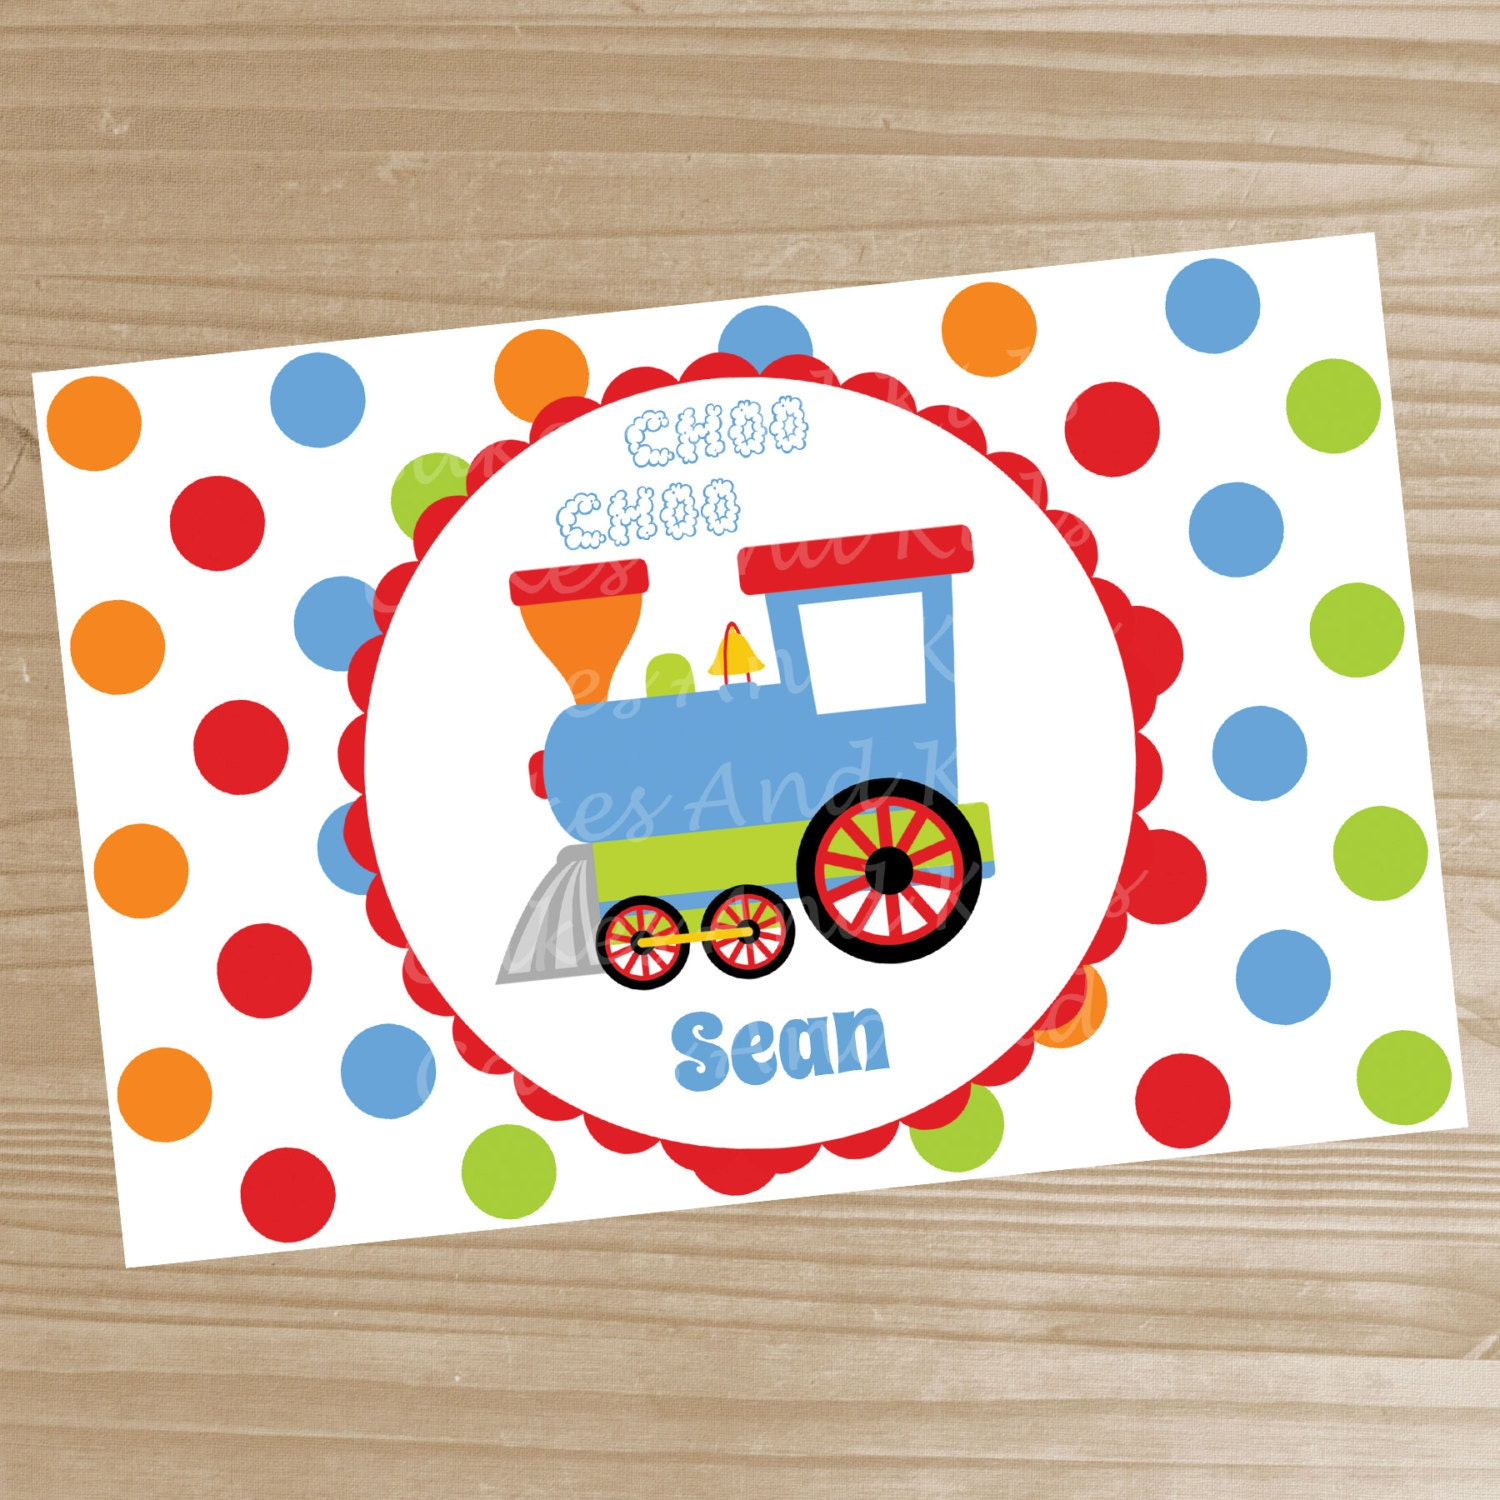 Personalized Plate for Kids - Train Plate Bowl or Placemat - Train Personalized Dinnerware -  sc 1 st  Purchase fashion trends Womens \u0026 Mens online Shoes \u0026 Boots Free Shipping & Personalized Plate for Kids - Train Plate Bowl or Placemat - Train ...